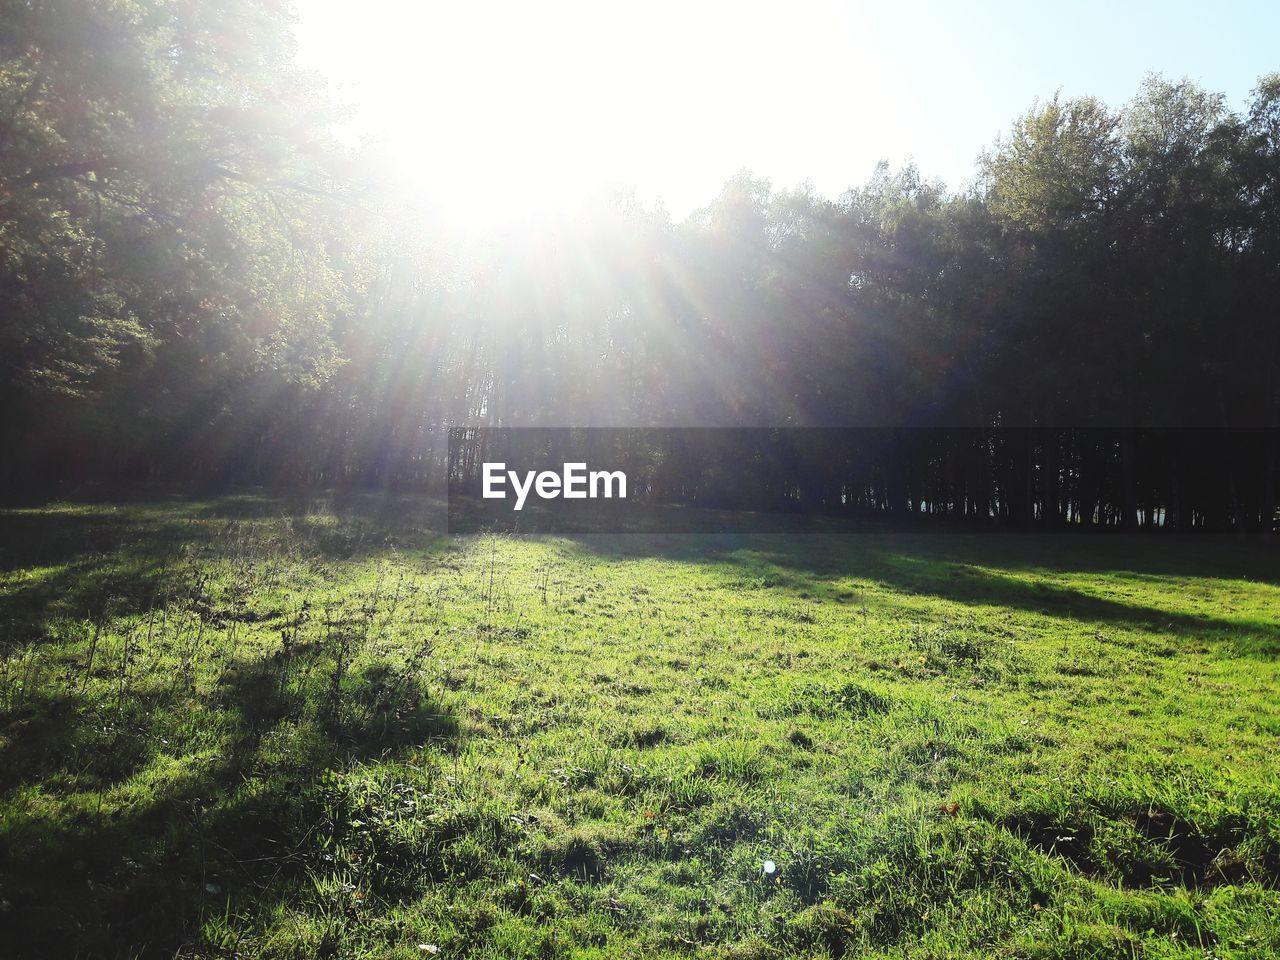 sunbeam, nature, sunlight, tree, grass, tranquility, day, no people, tranquil scene, beauty in nature, growth, outdoors, landscape